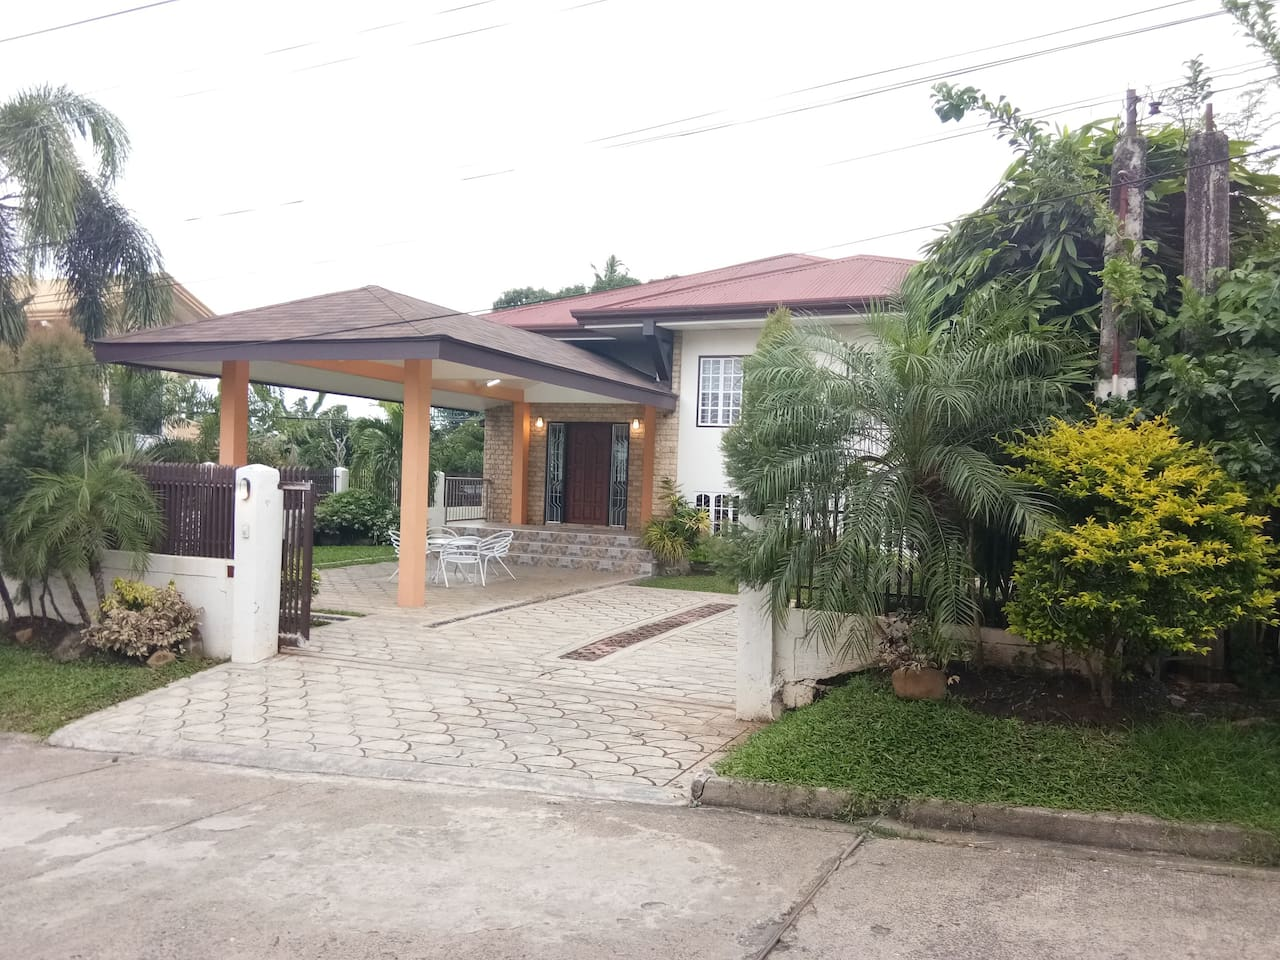 3BR Spacious House Near SM Lanang and Tebow Cure Hospital